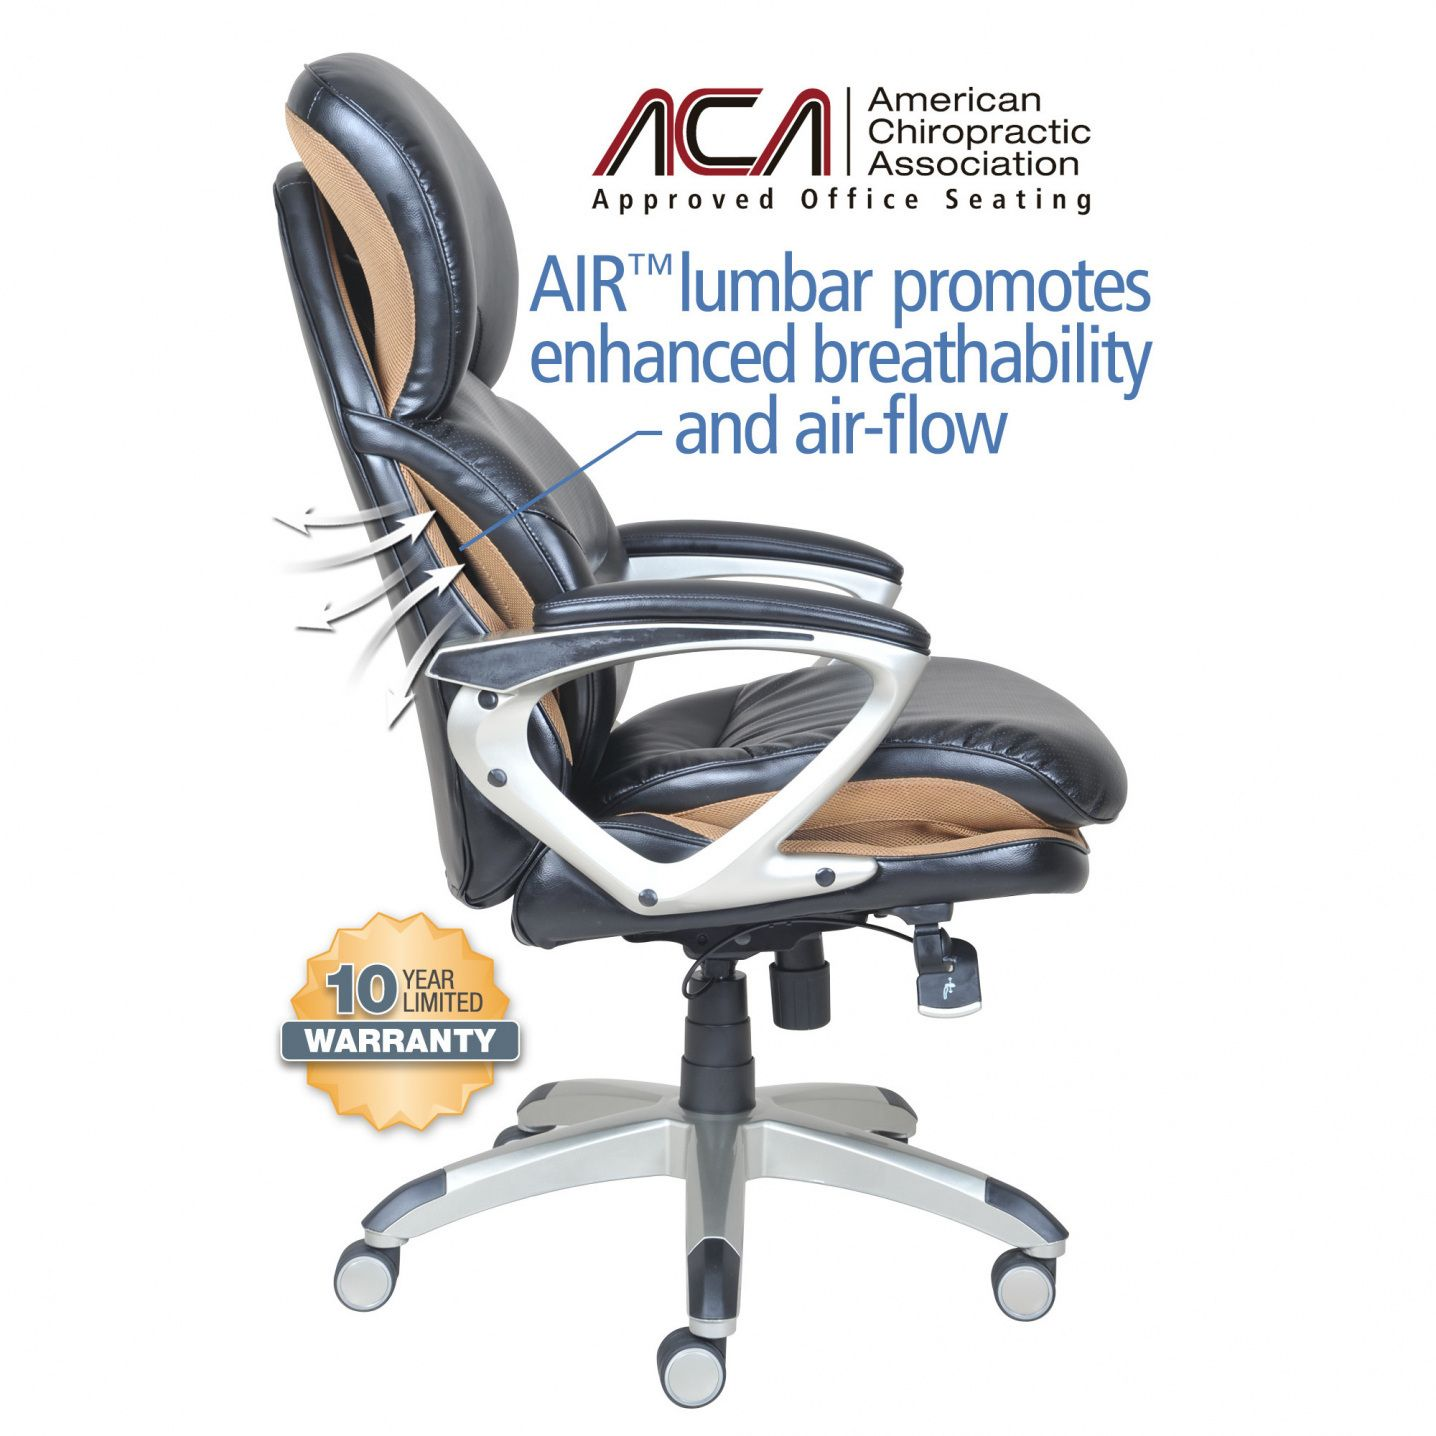 american chiropractic association office chair